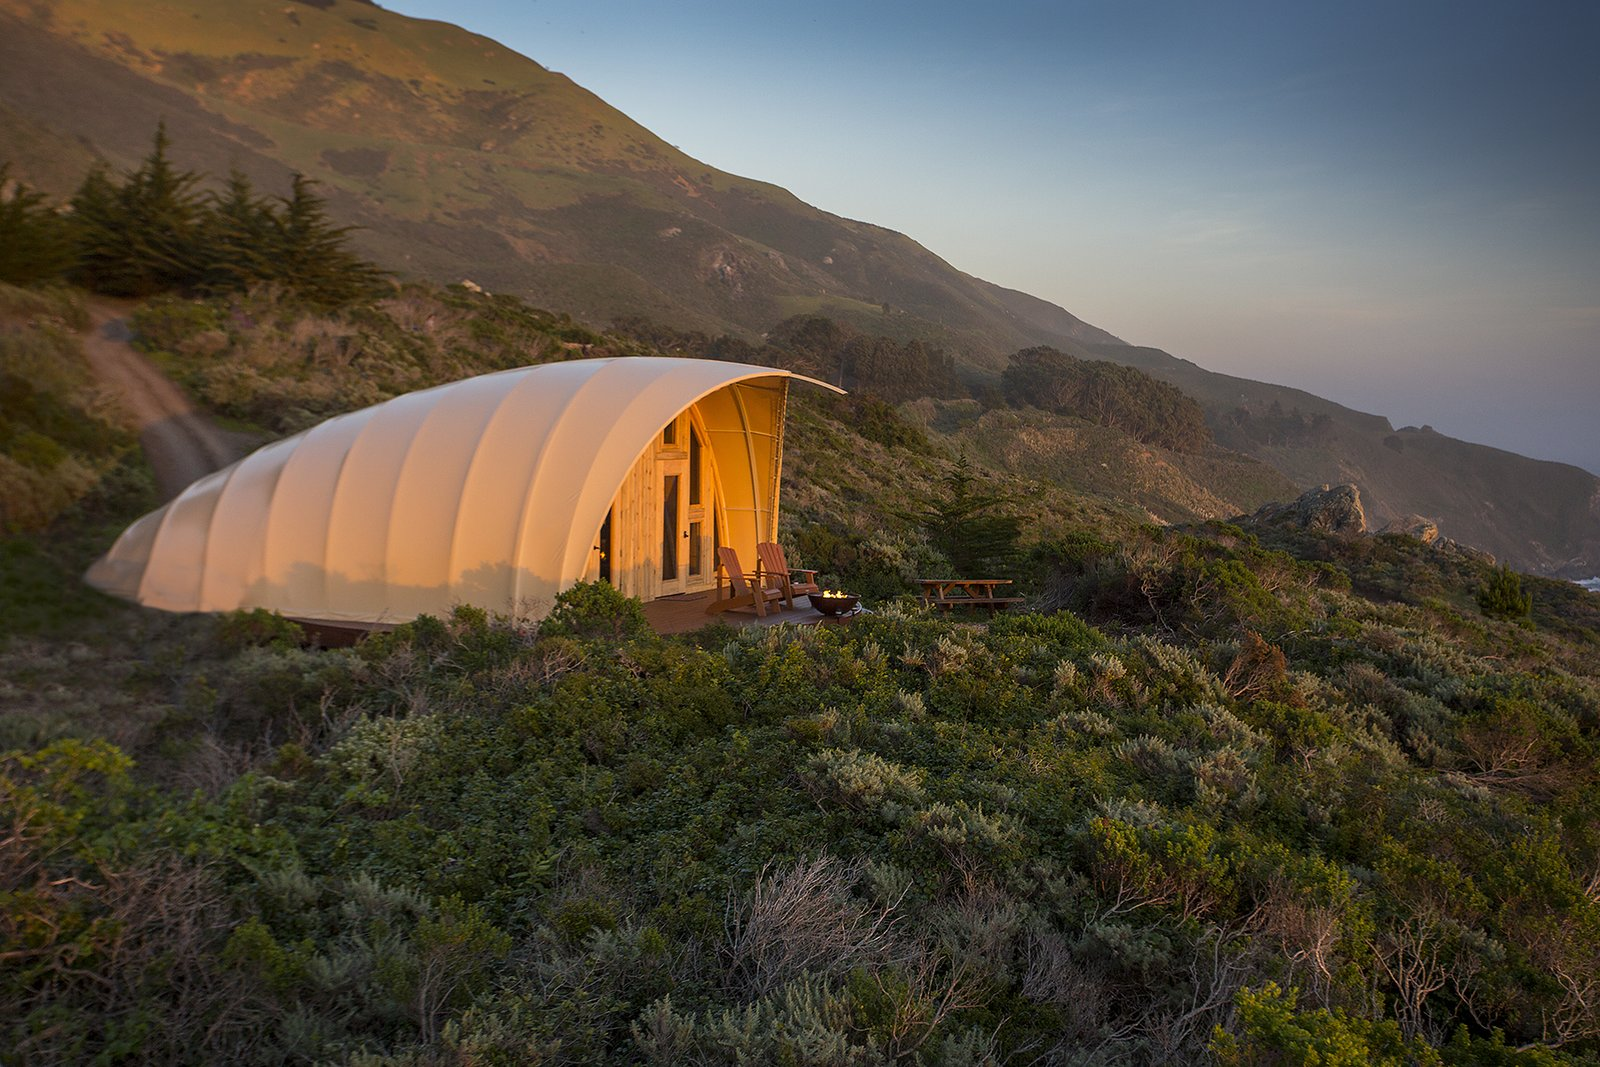 Outdoor, Grass, Small Patio, Porch, Deck, Trees, Slope, and Shrubs The Autonomous Tent is available to book for $495 plus tax per night. To make a reservation, visit the Treebones Resort website.  Photo 5 of 5 in Sleep in a Translucent Cocoon for $495 a Night